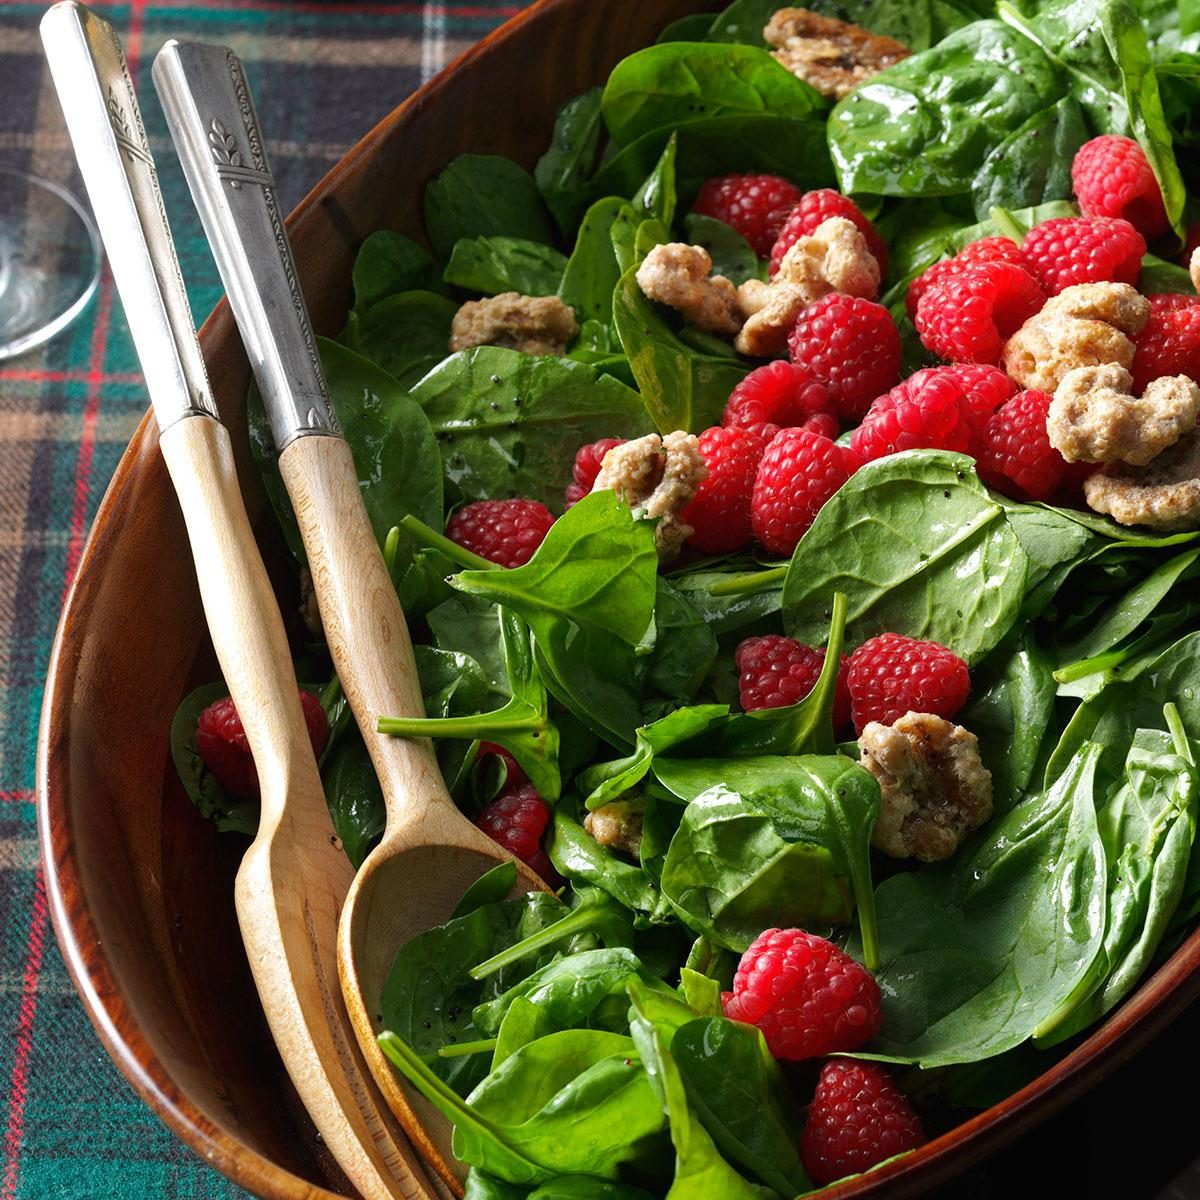 Spinach Salad With Raspberries & Candied Walnuts Recipe